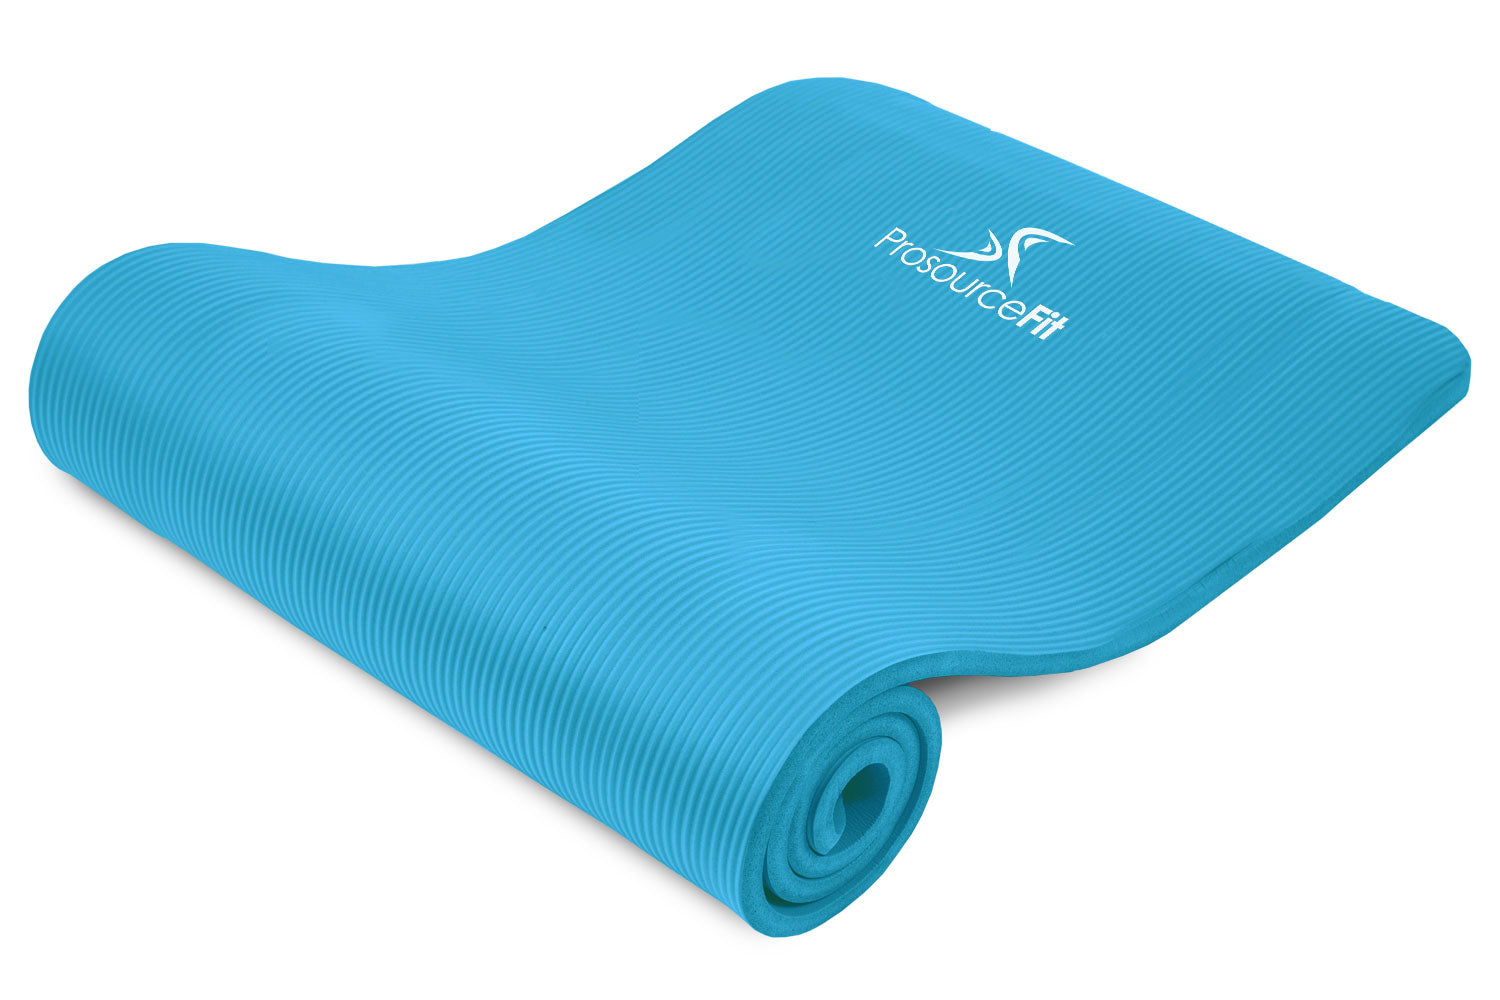 34bf6fc0e Extra Thick Yoga and Pilates Mat 1 2 inch - ProsourceFit